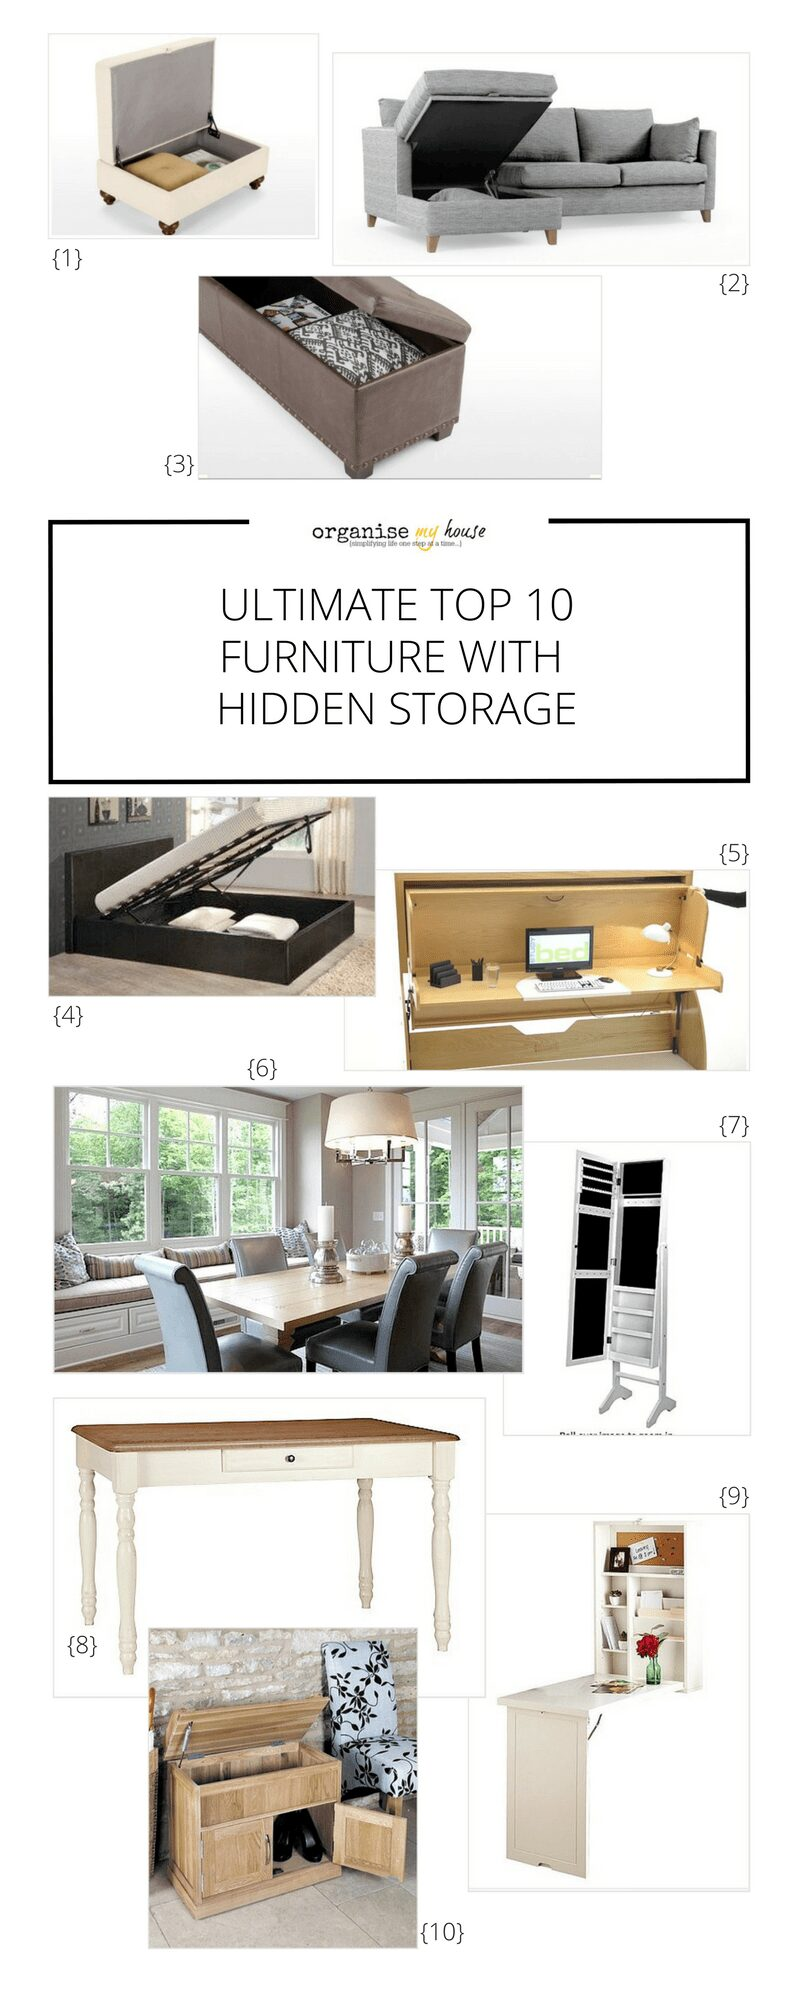 10 ultimate Hidden Storage Furniture ideas for your home. Choose furniture that has extra storage so you can live in a more minimal way - with everything out of the way and stored in the right places. Furniture for your home.